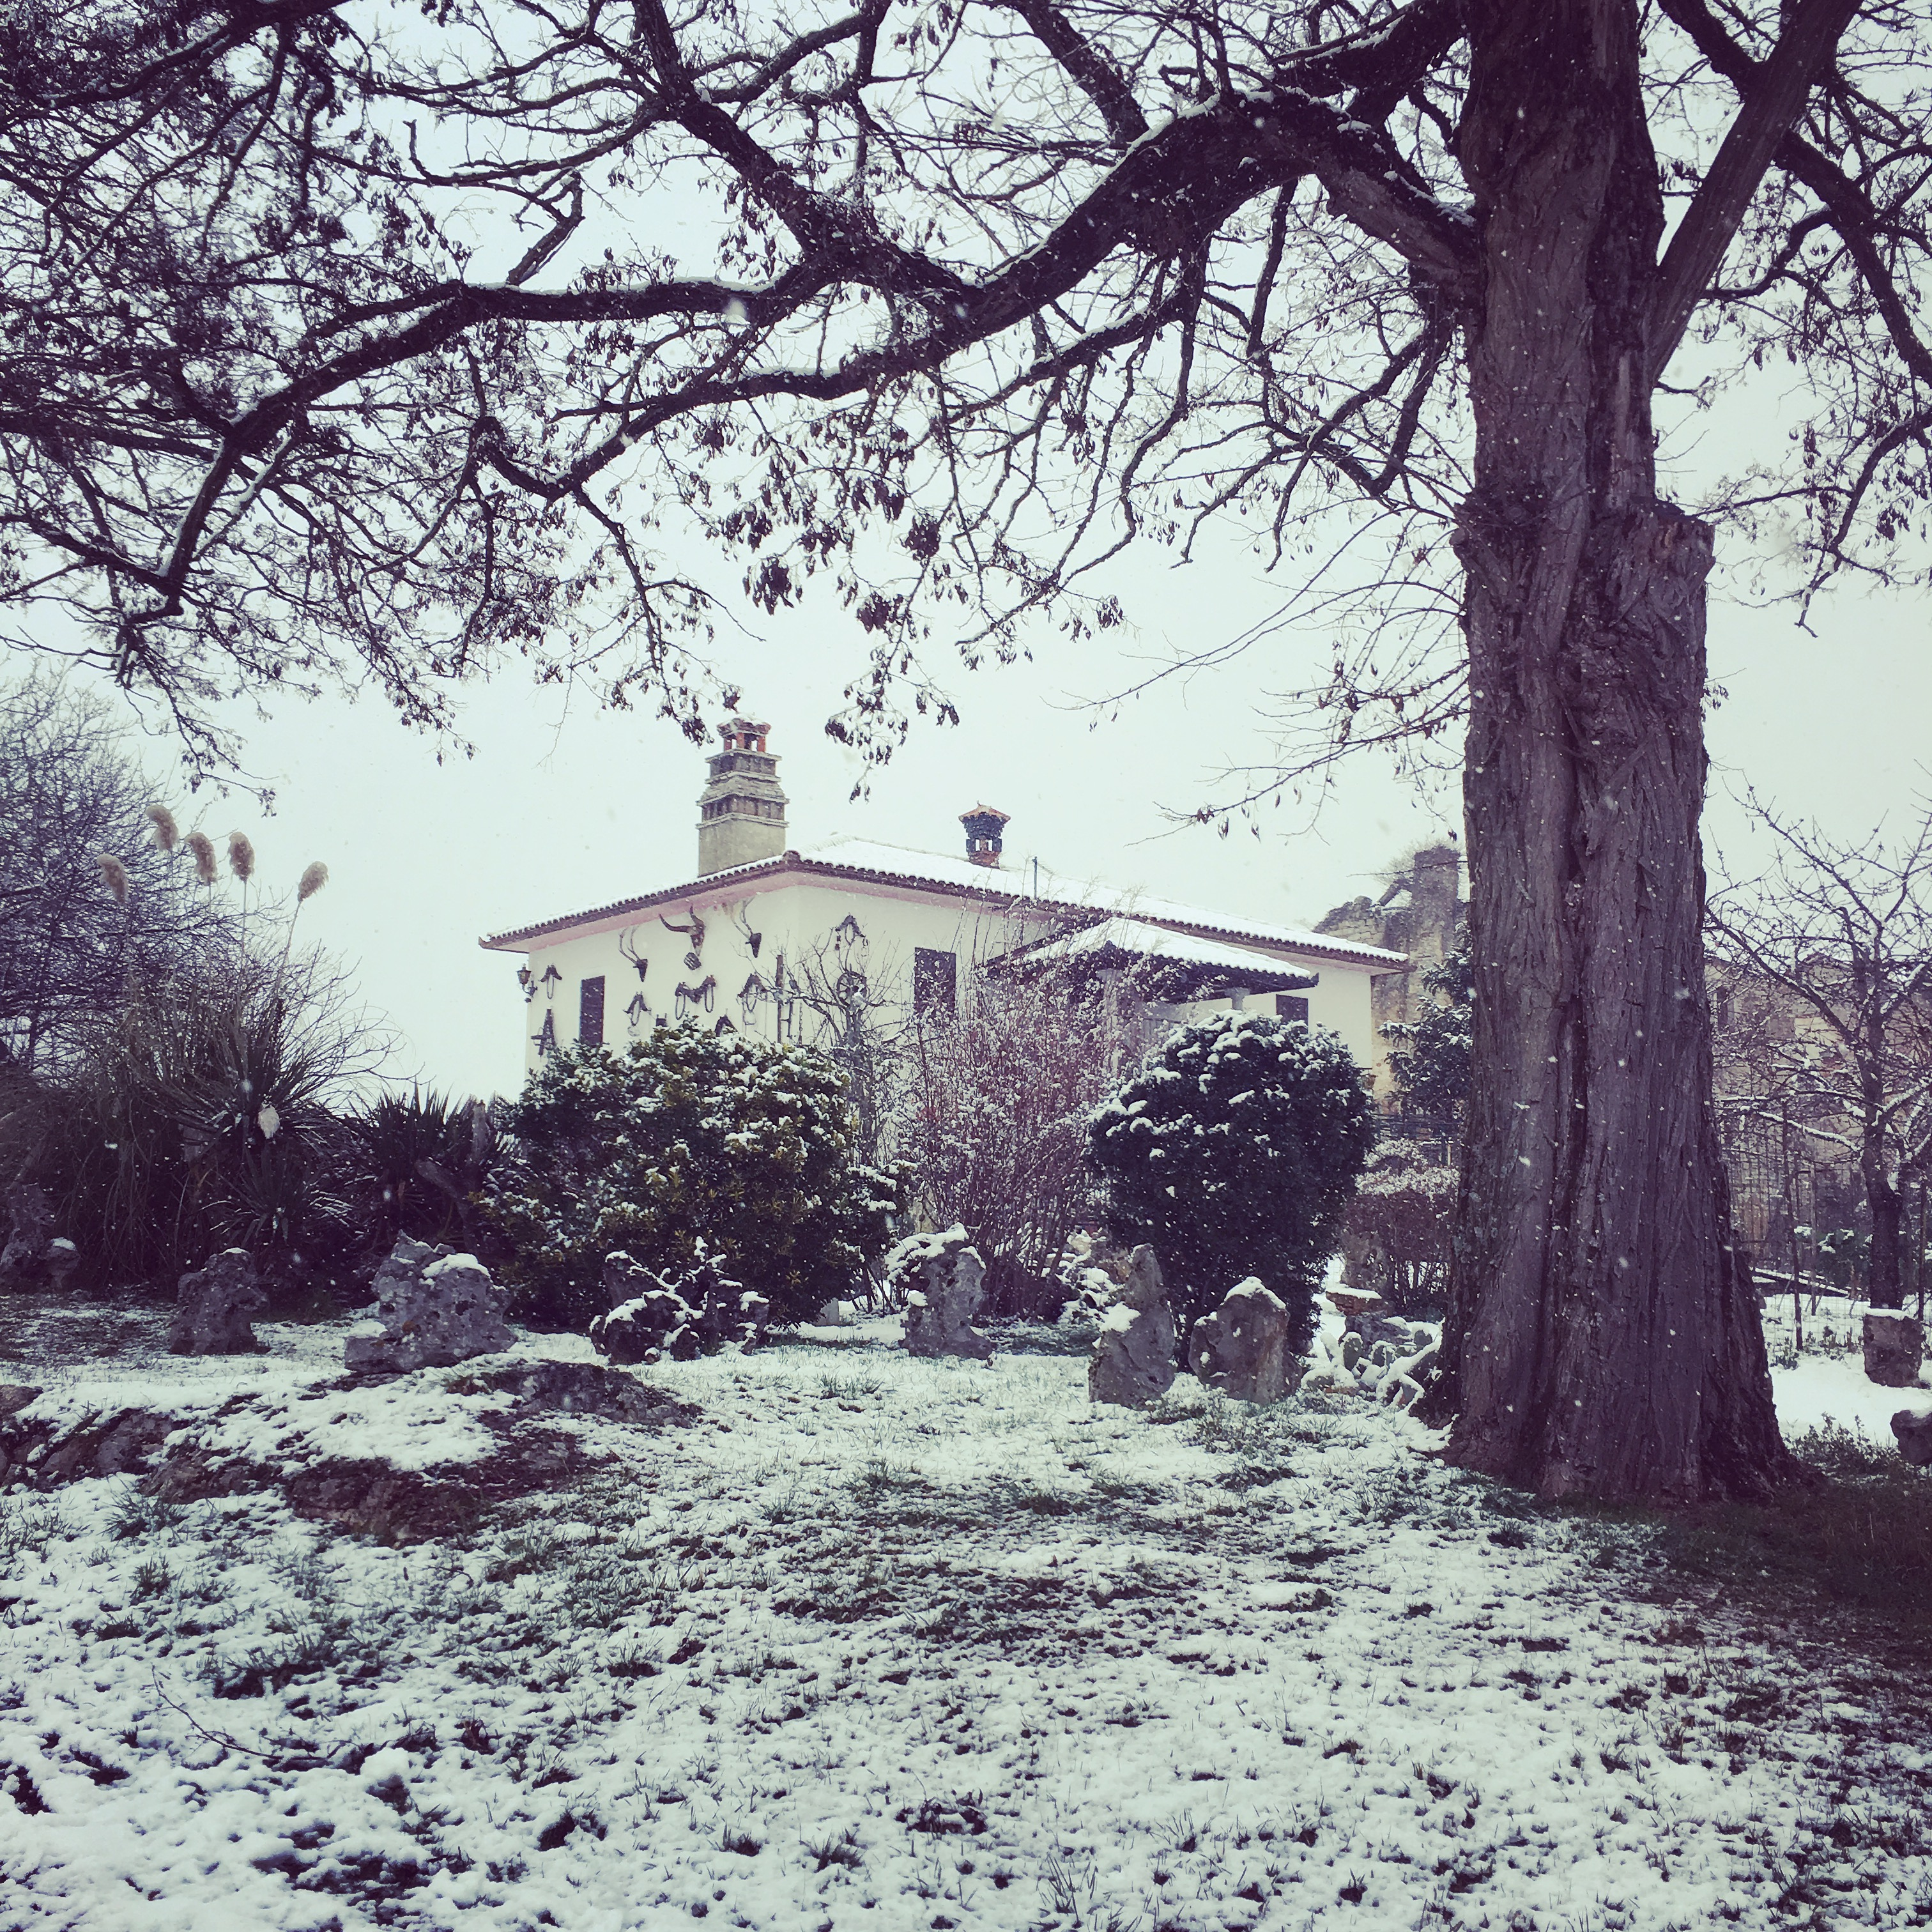 Neighbour's house, which looks very pretty, in the snow.